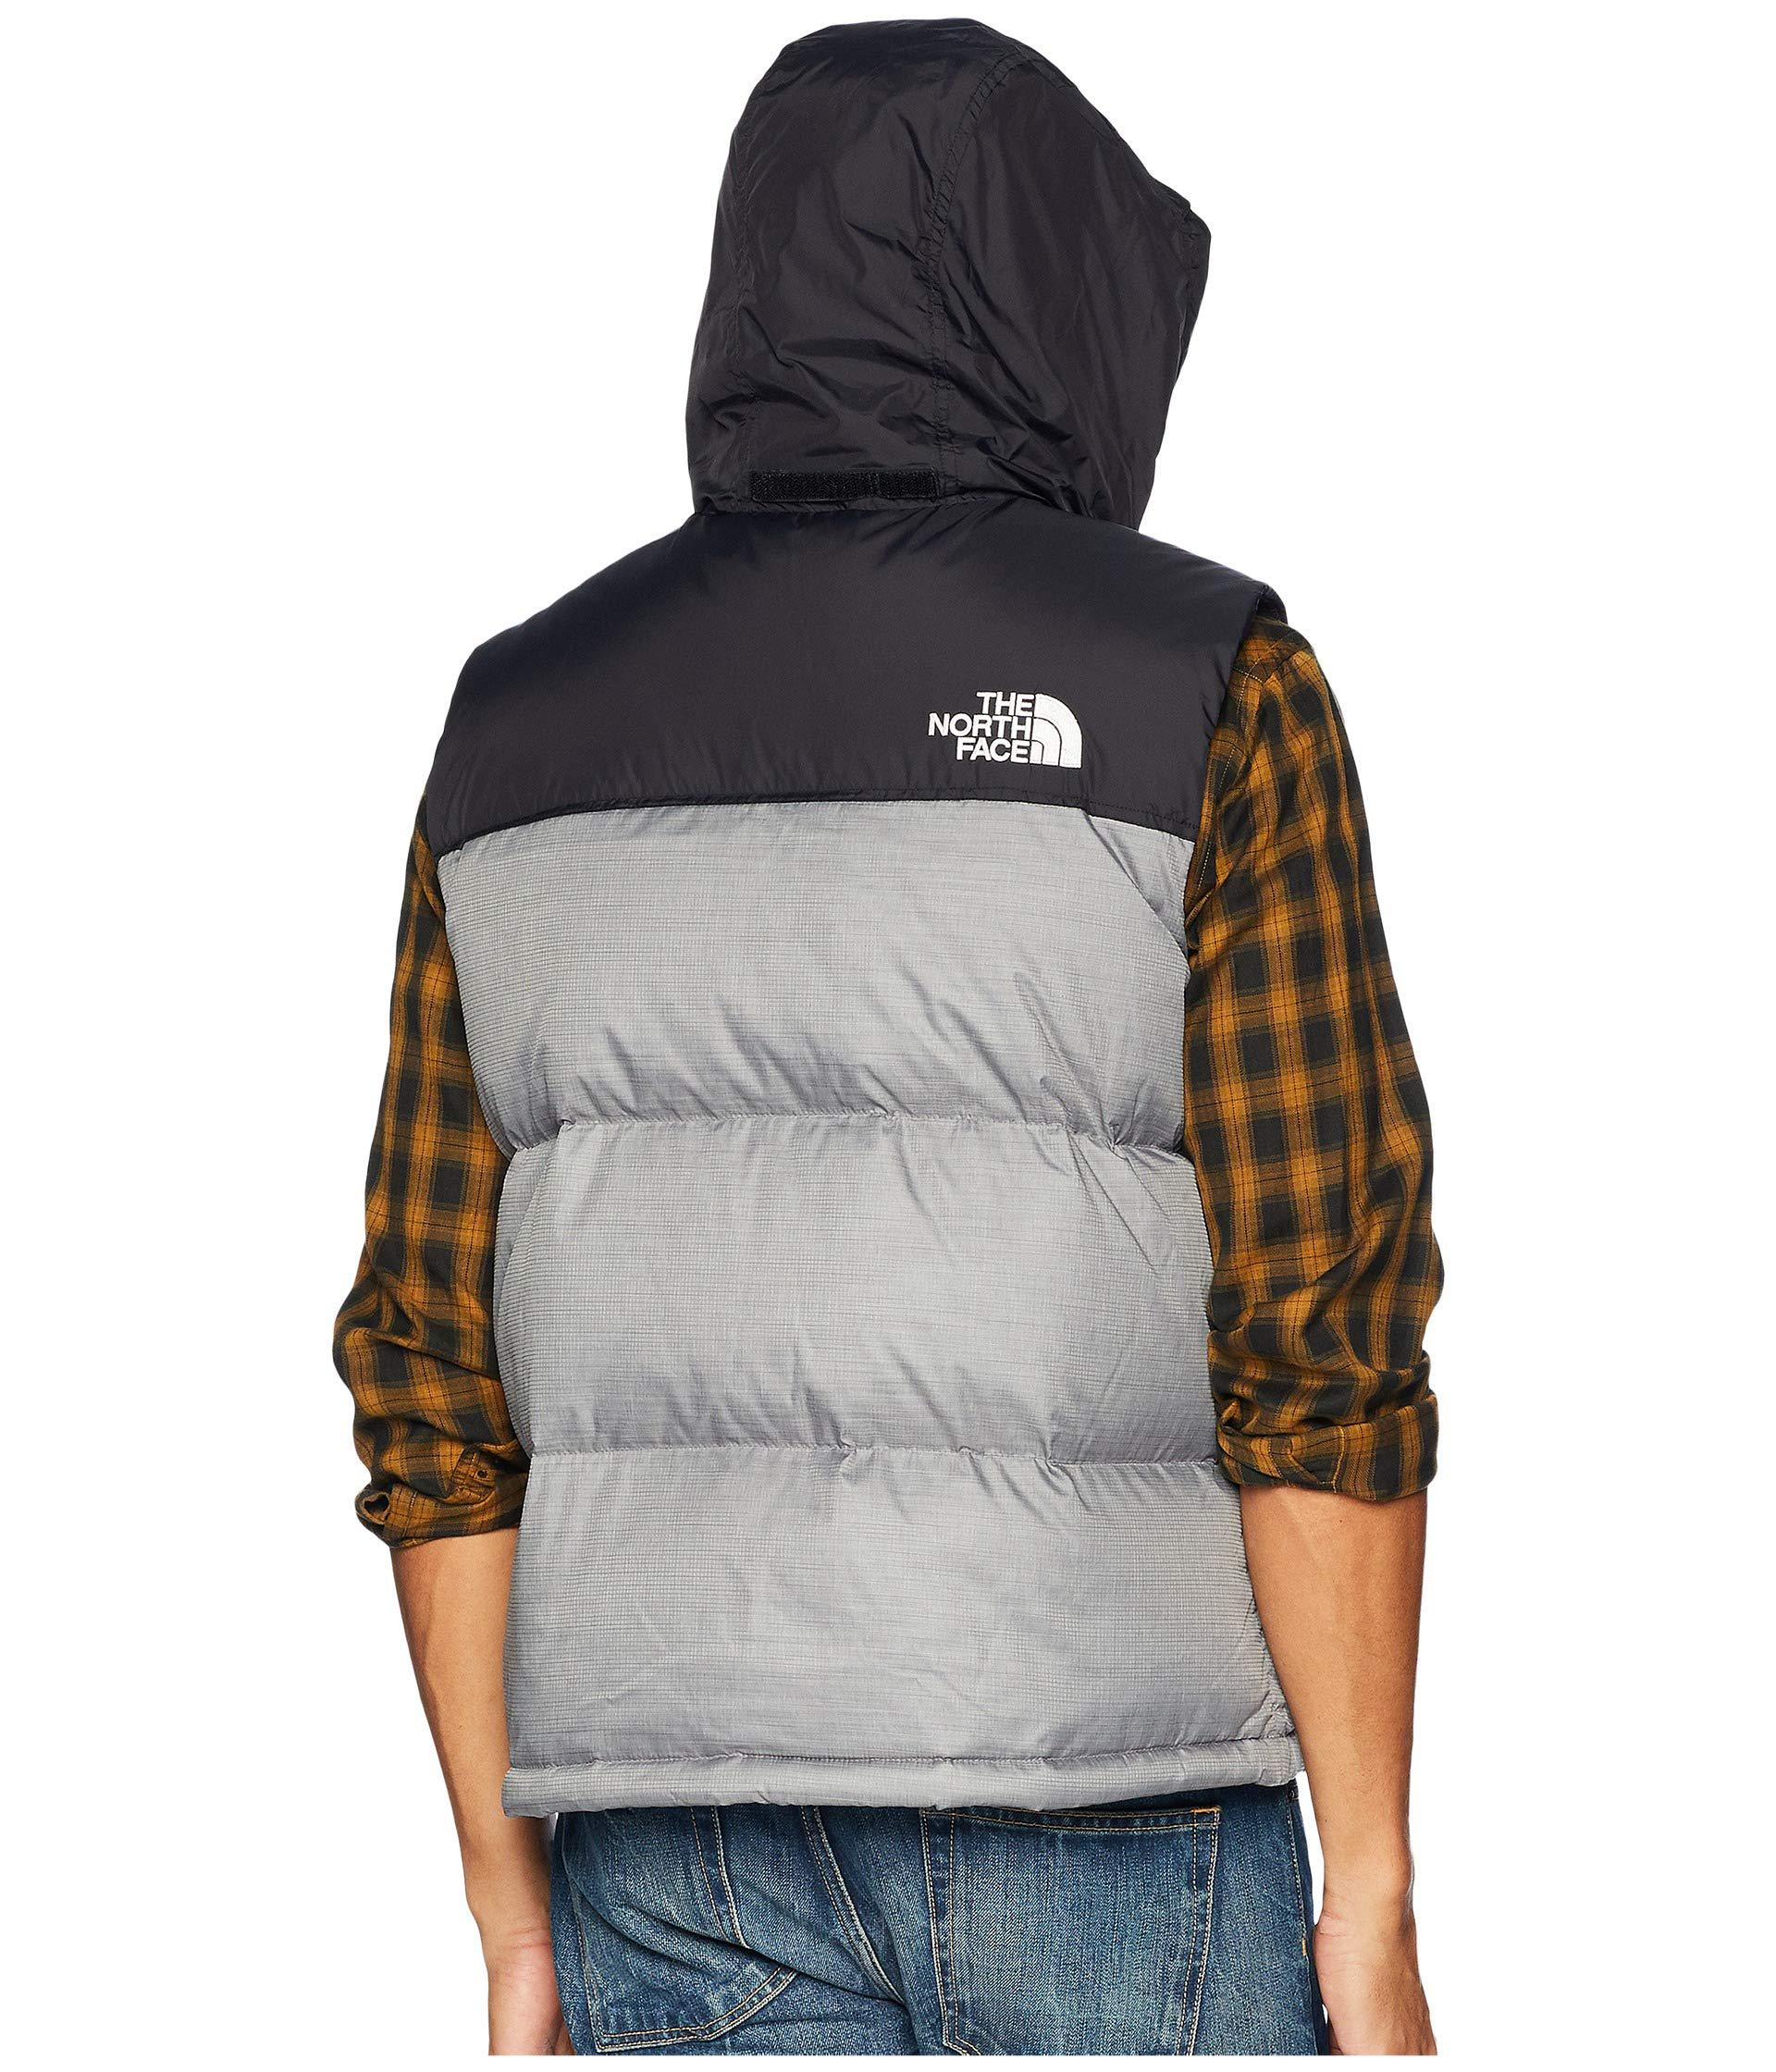 51cdd8fdc3 The North Face - Gray 1996 Retro Nuptse Vest (aztec Blue) Men s Vest for.  View fullscreen